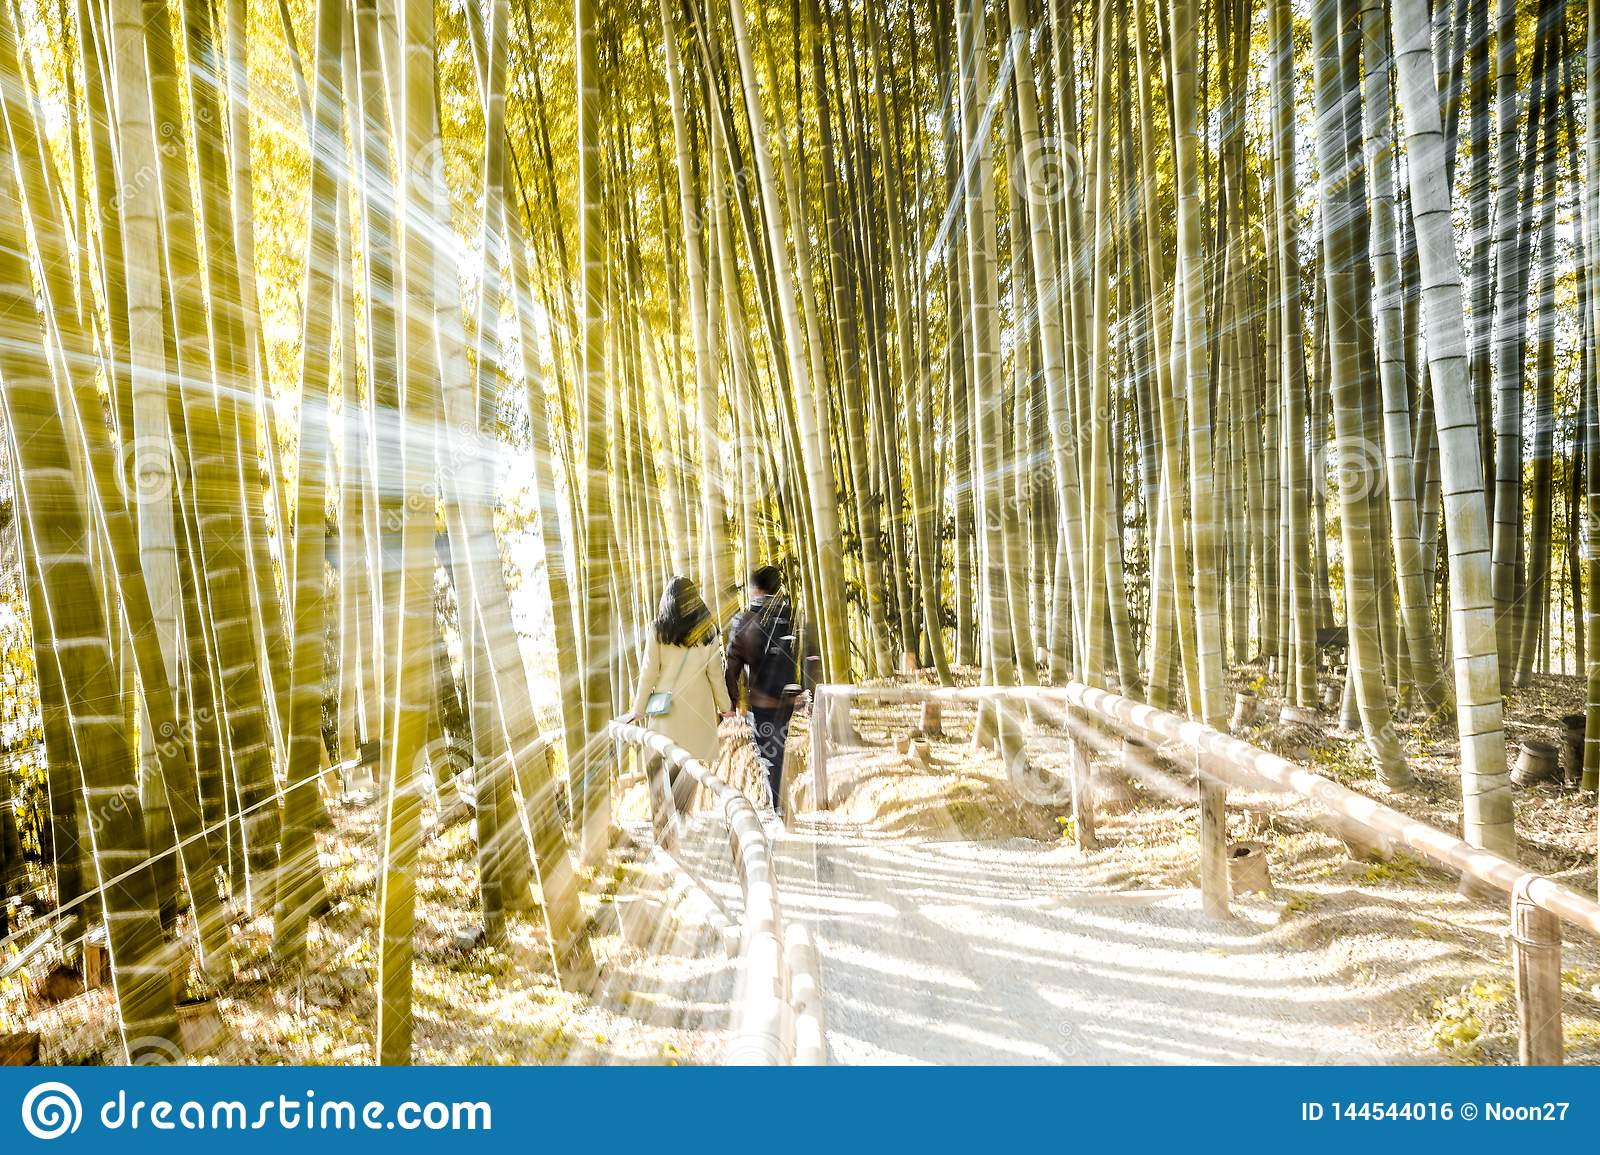 Bamboo Forest Effect